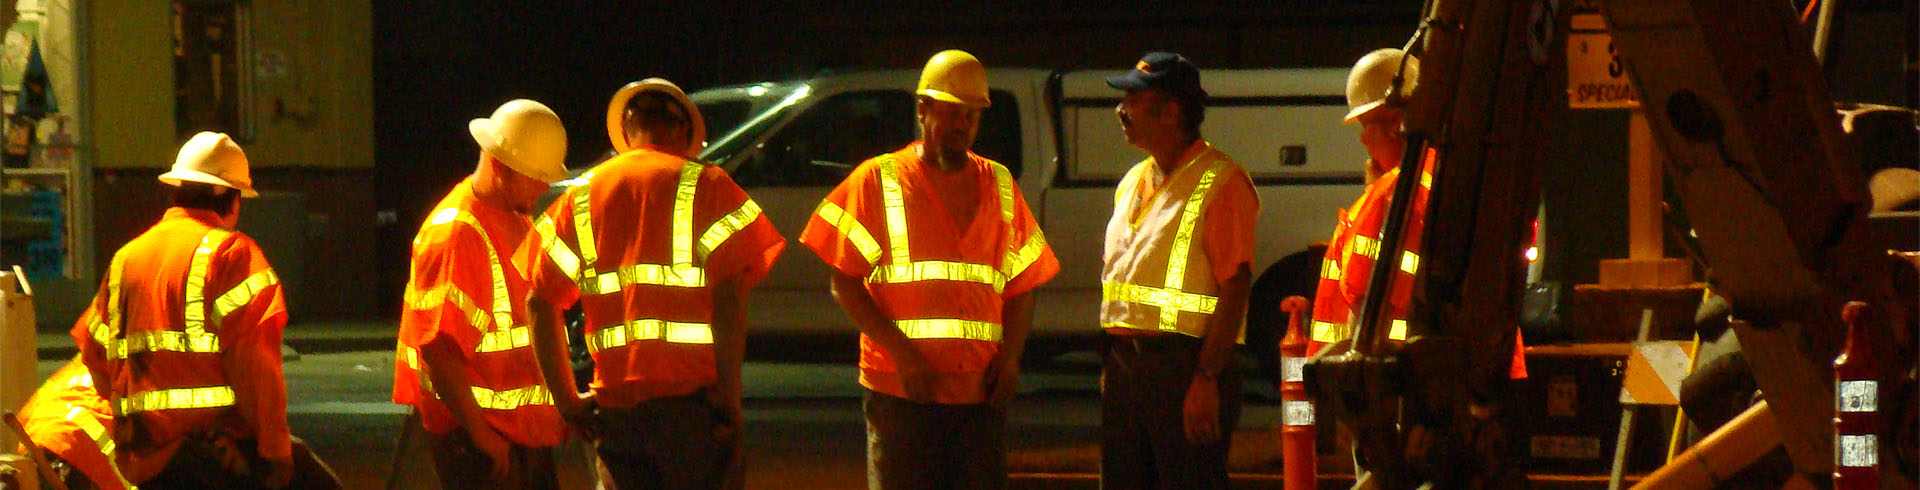 Construction workers at dusk